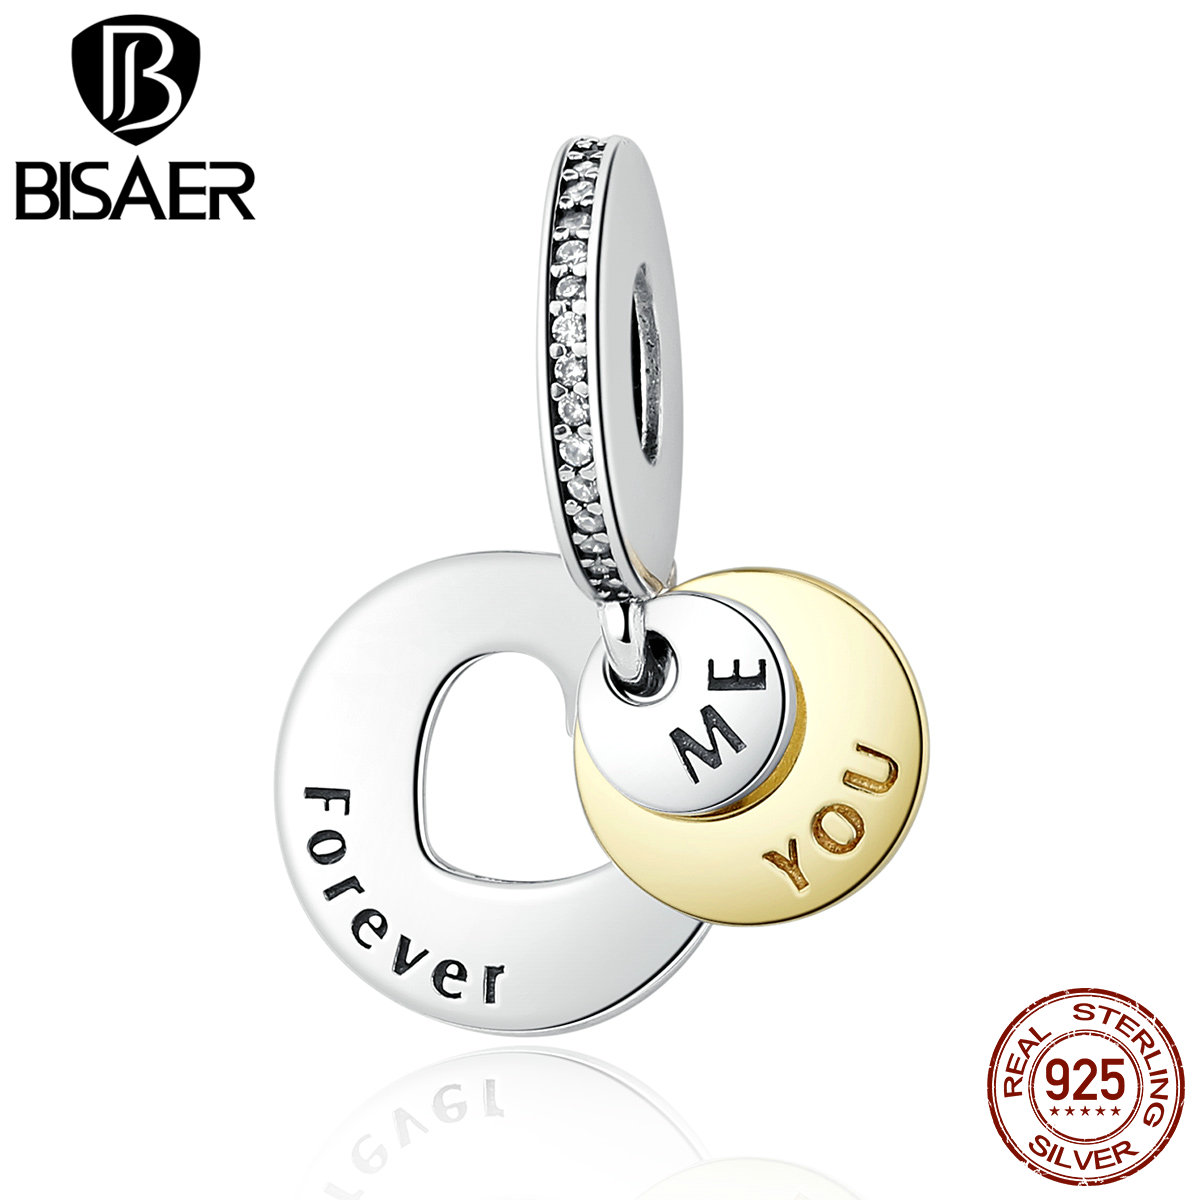 Romantic Gift 925 Sterling Silver You & Me Forever, Clear CZ Round Pendant Charms Fit BISAER Bracelet DIY Jewelry EDC017